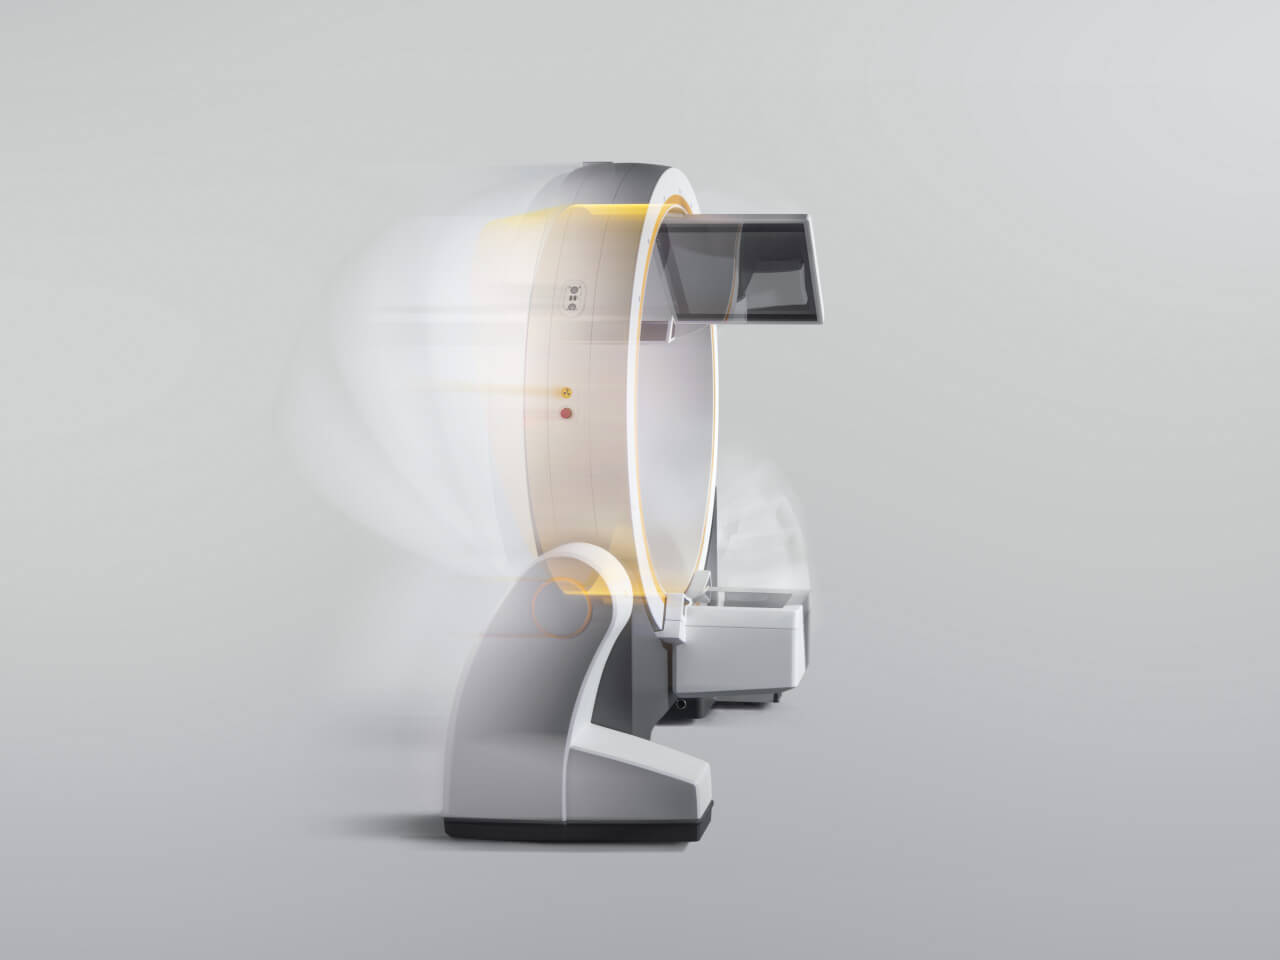 Brainlab Loop-X 3D-C-arm drives autonomously to stored positions